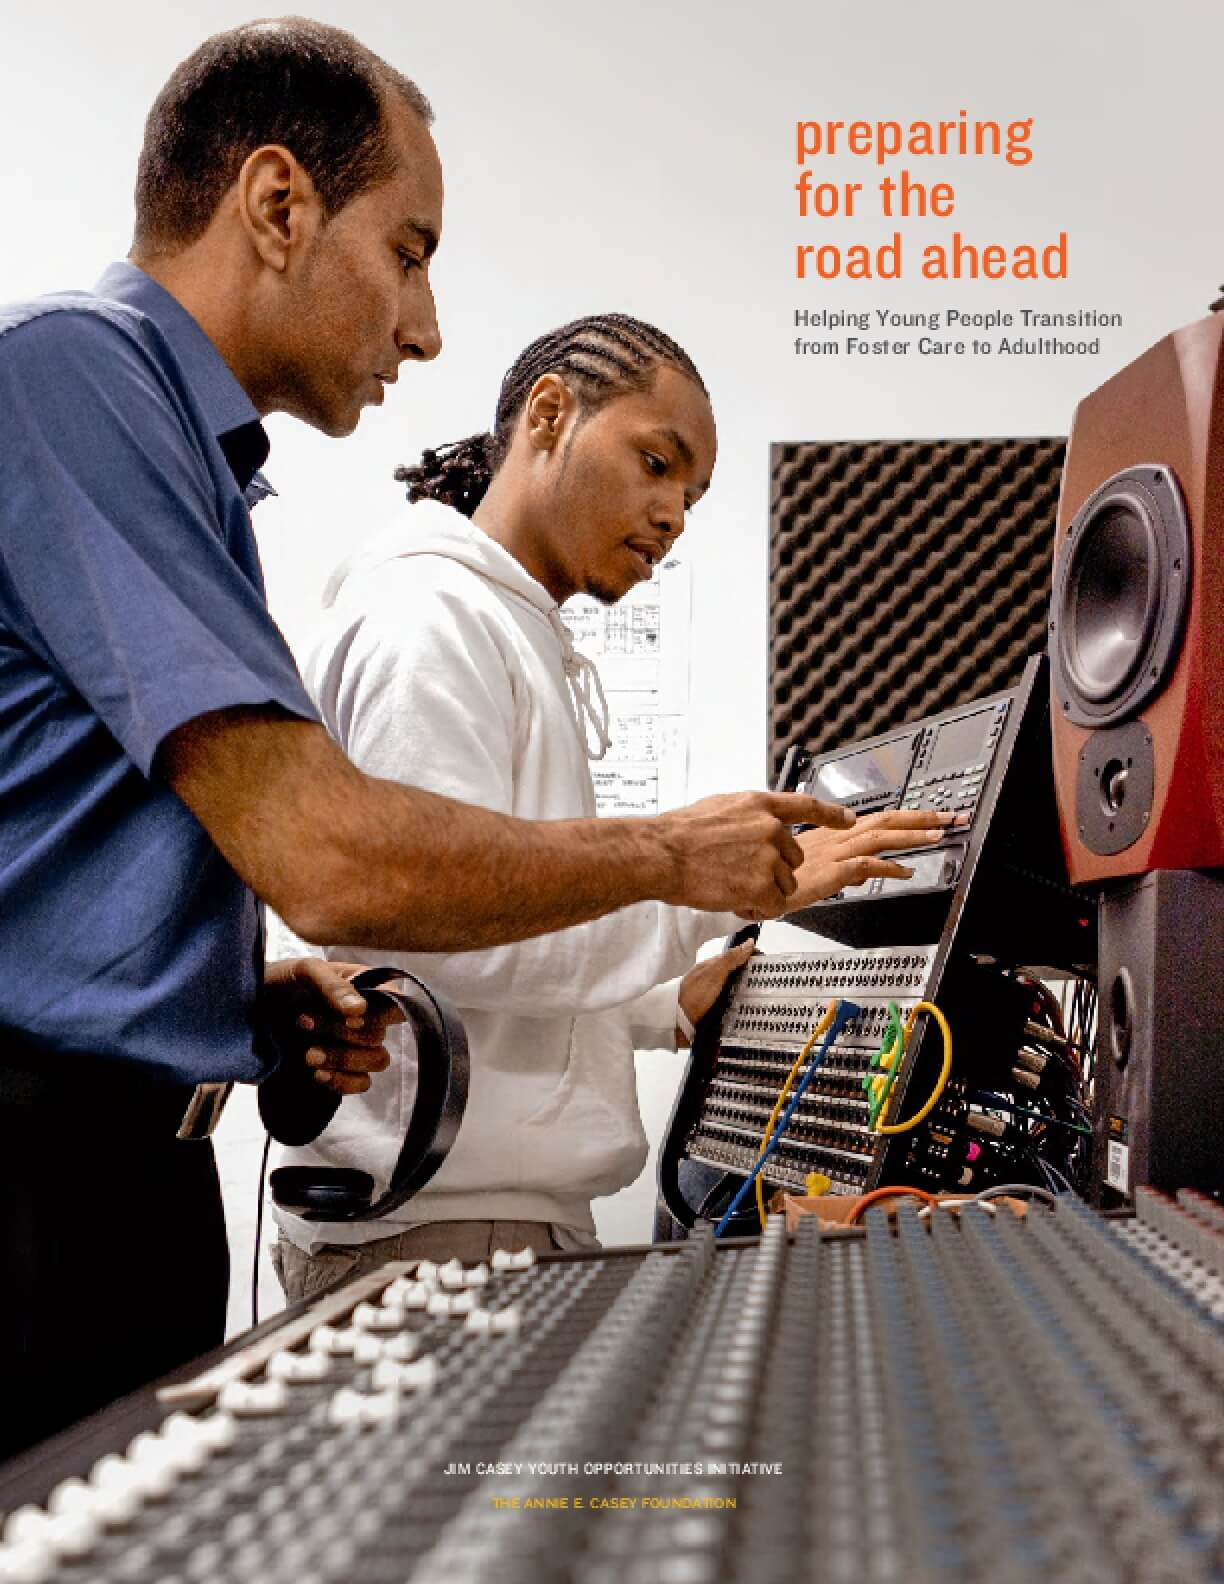 Preparing for the Road Ahead: Helping Young People Transition from Foster Care to Adulthood